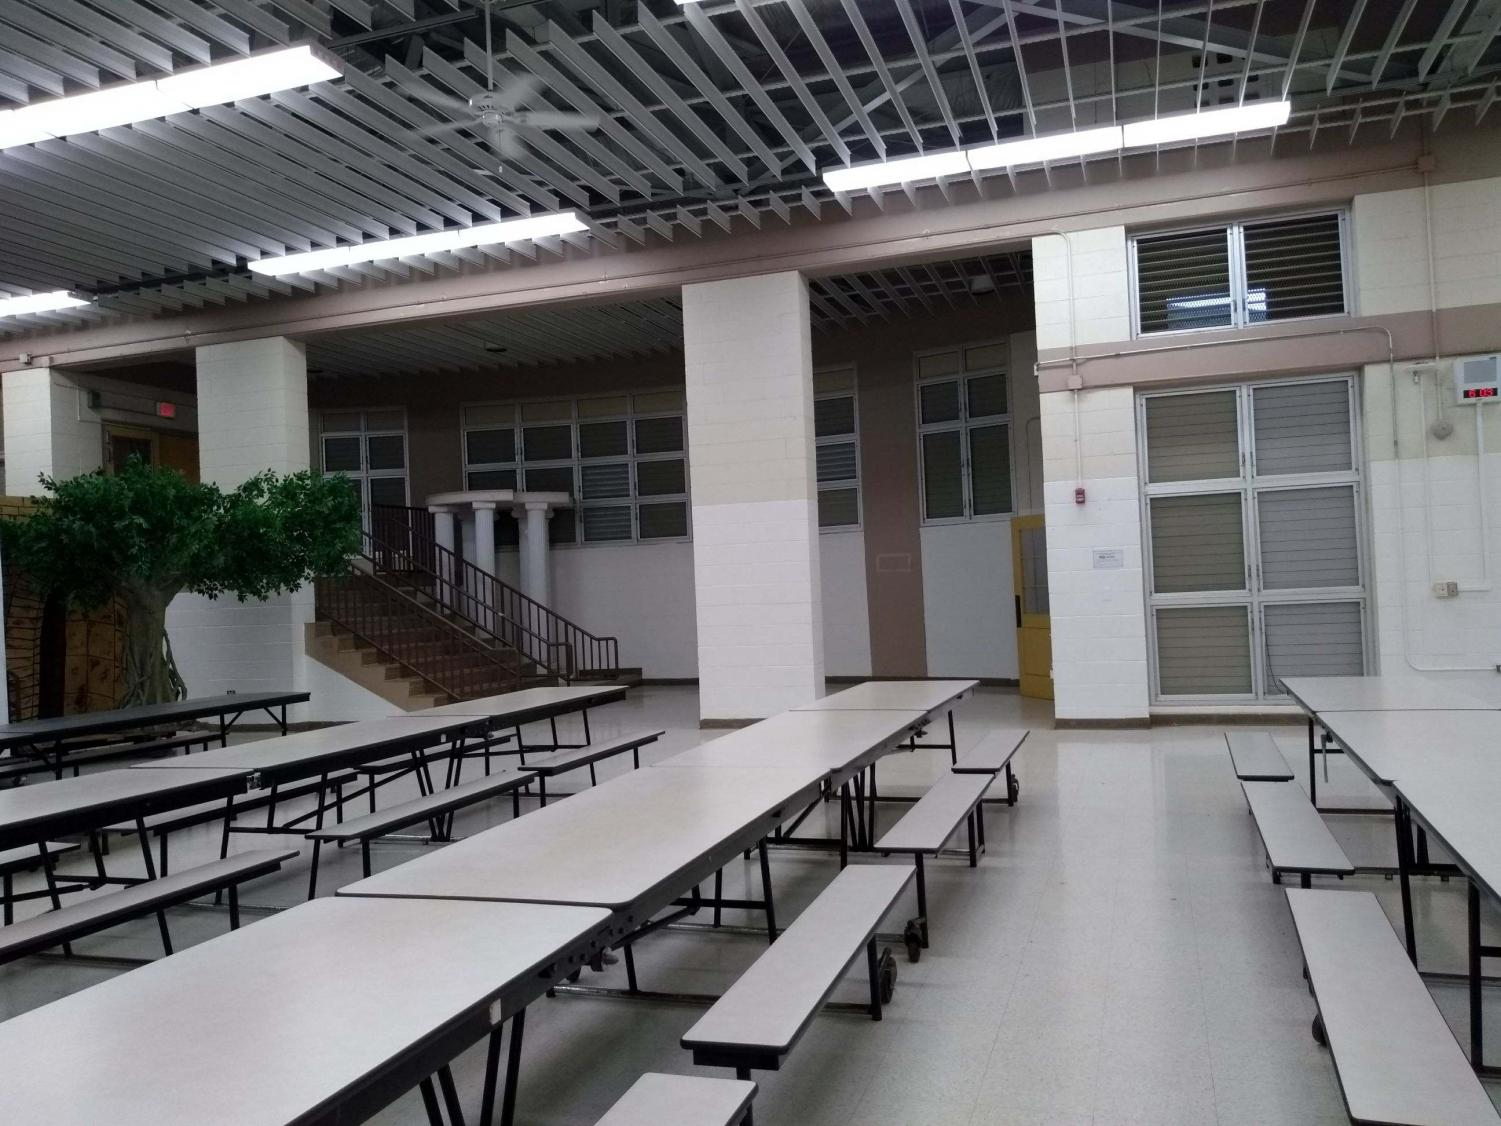 The area that was used to house lockout students now stands vacant during the school day.